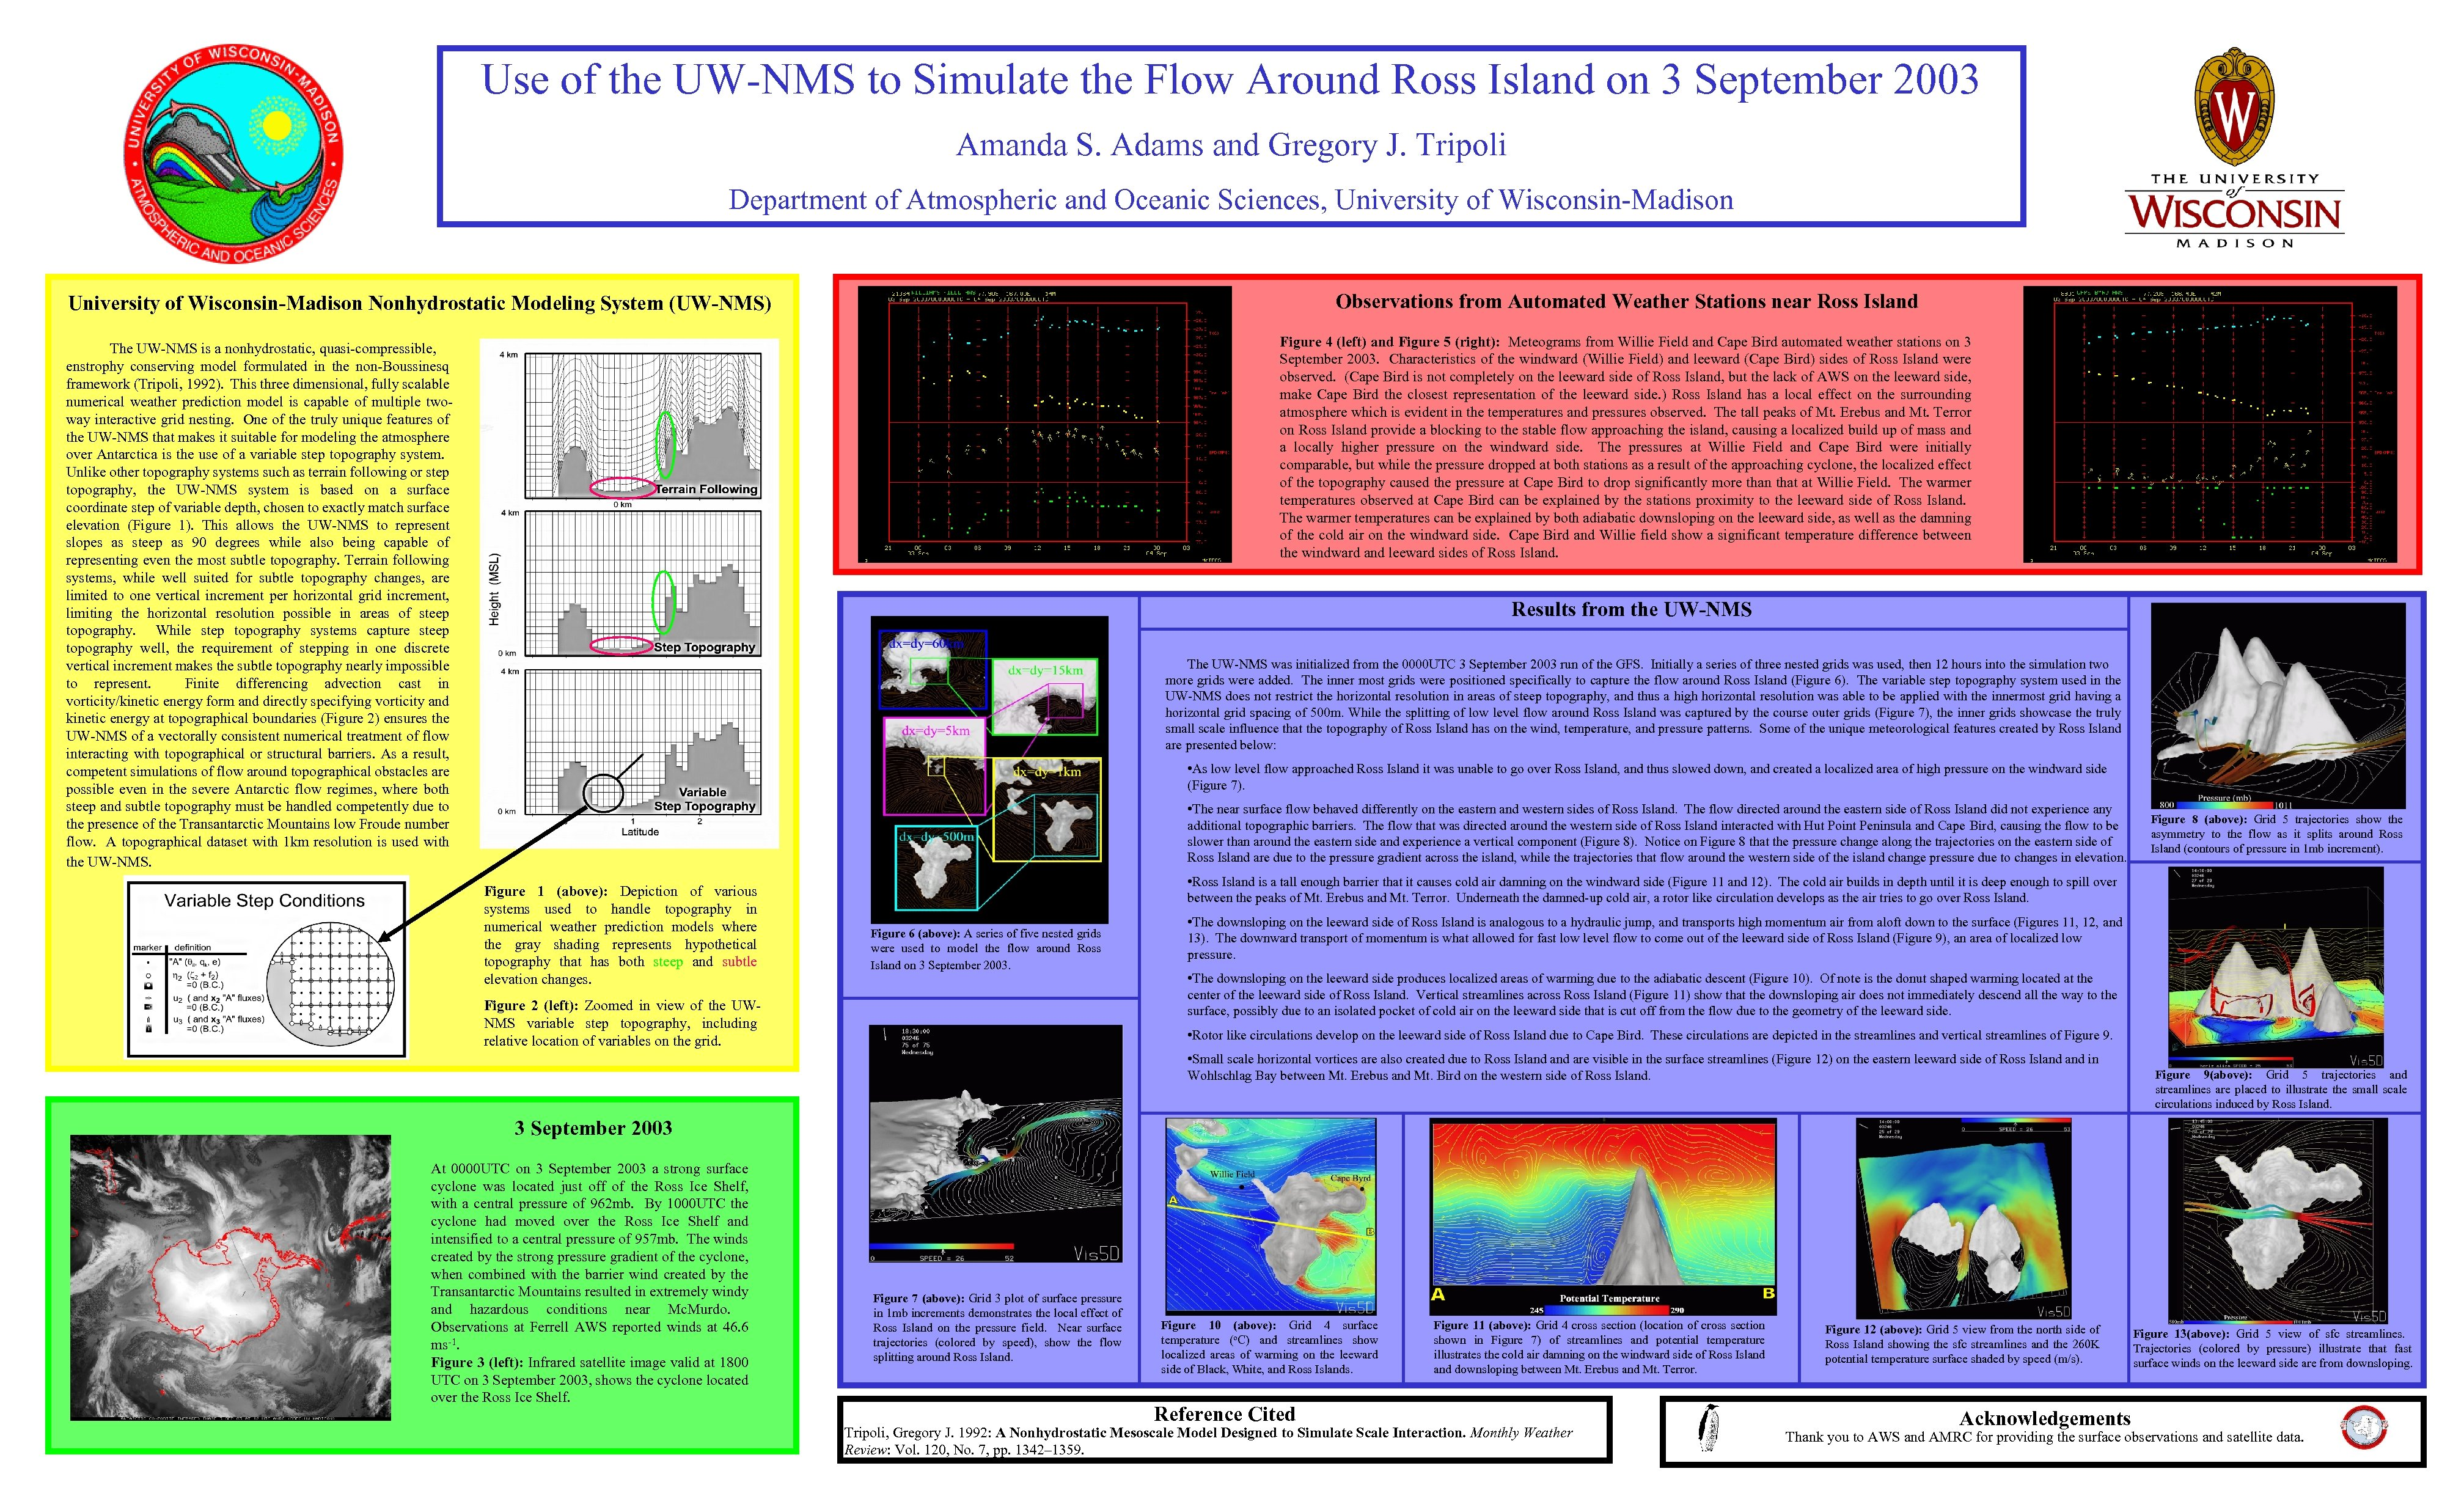 Use of the UW-NMS to Simulate the Flow Around Ross Island on 3 September